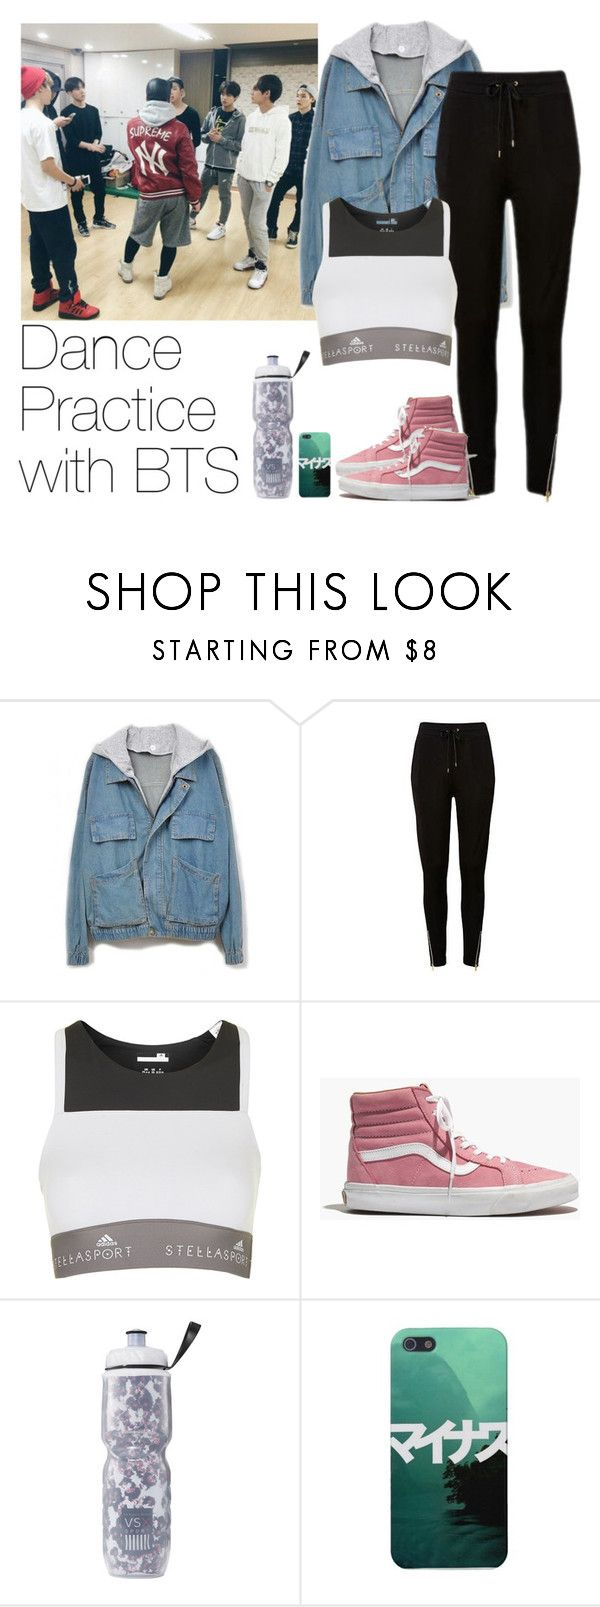 """""""Dance Practice with BTS"""" by yeolkkuma ❤ liked on Polyvore featuring adidas, Madewell and Victoria's Secret"""